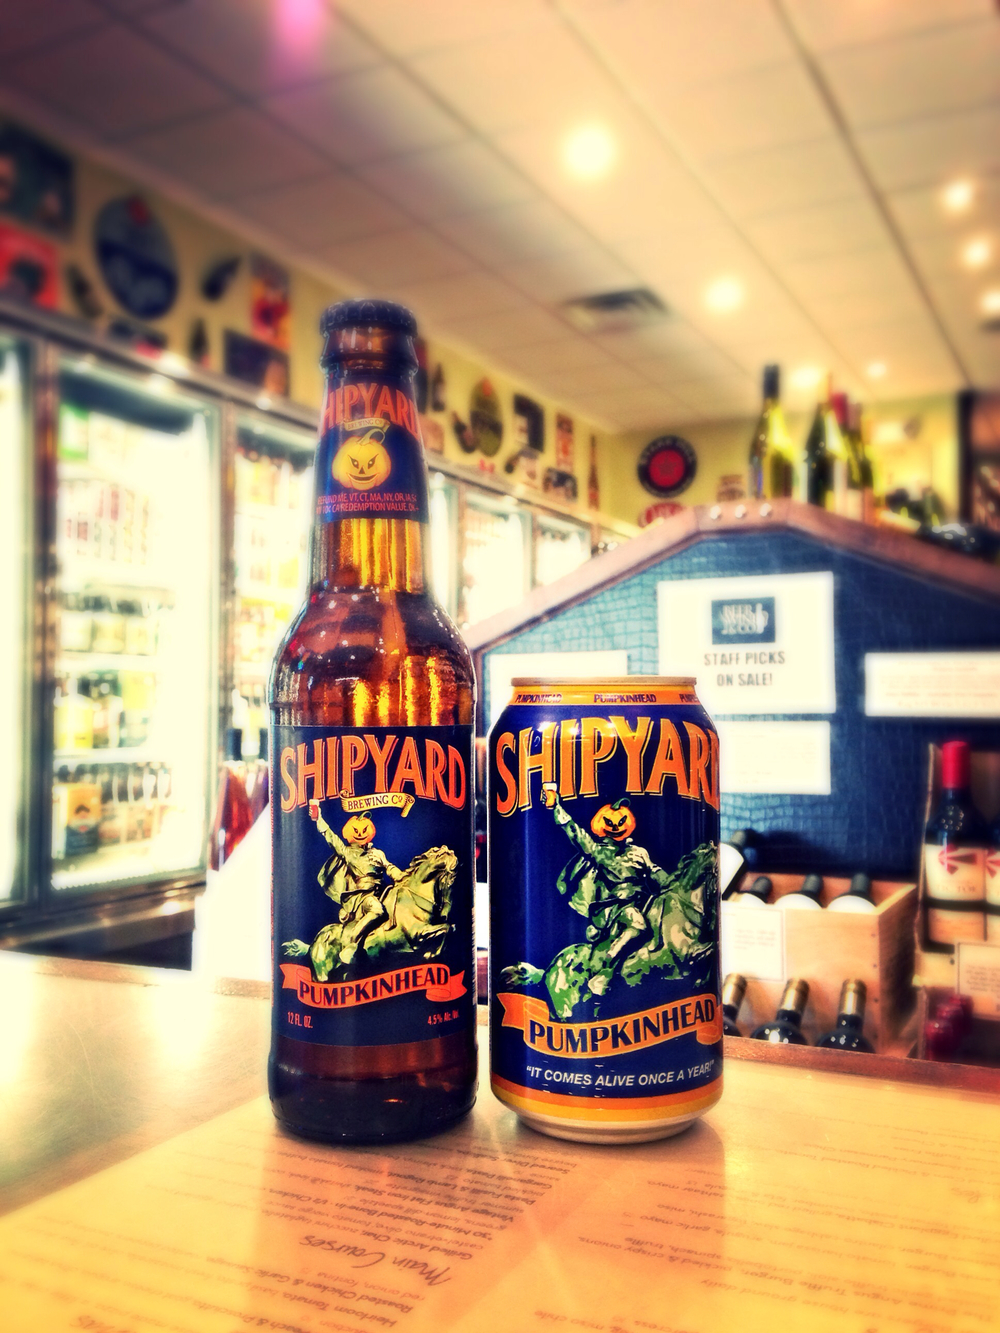 Shipyard Pumpkinhead (Bottles & Cans)